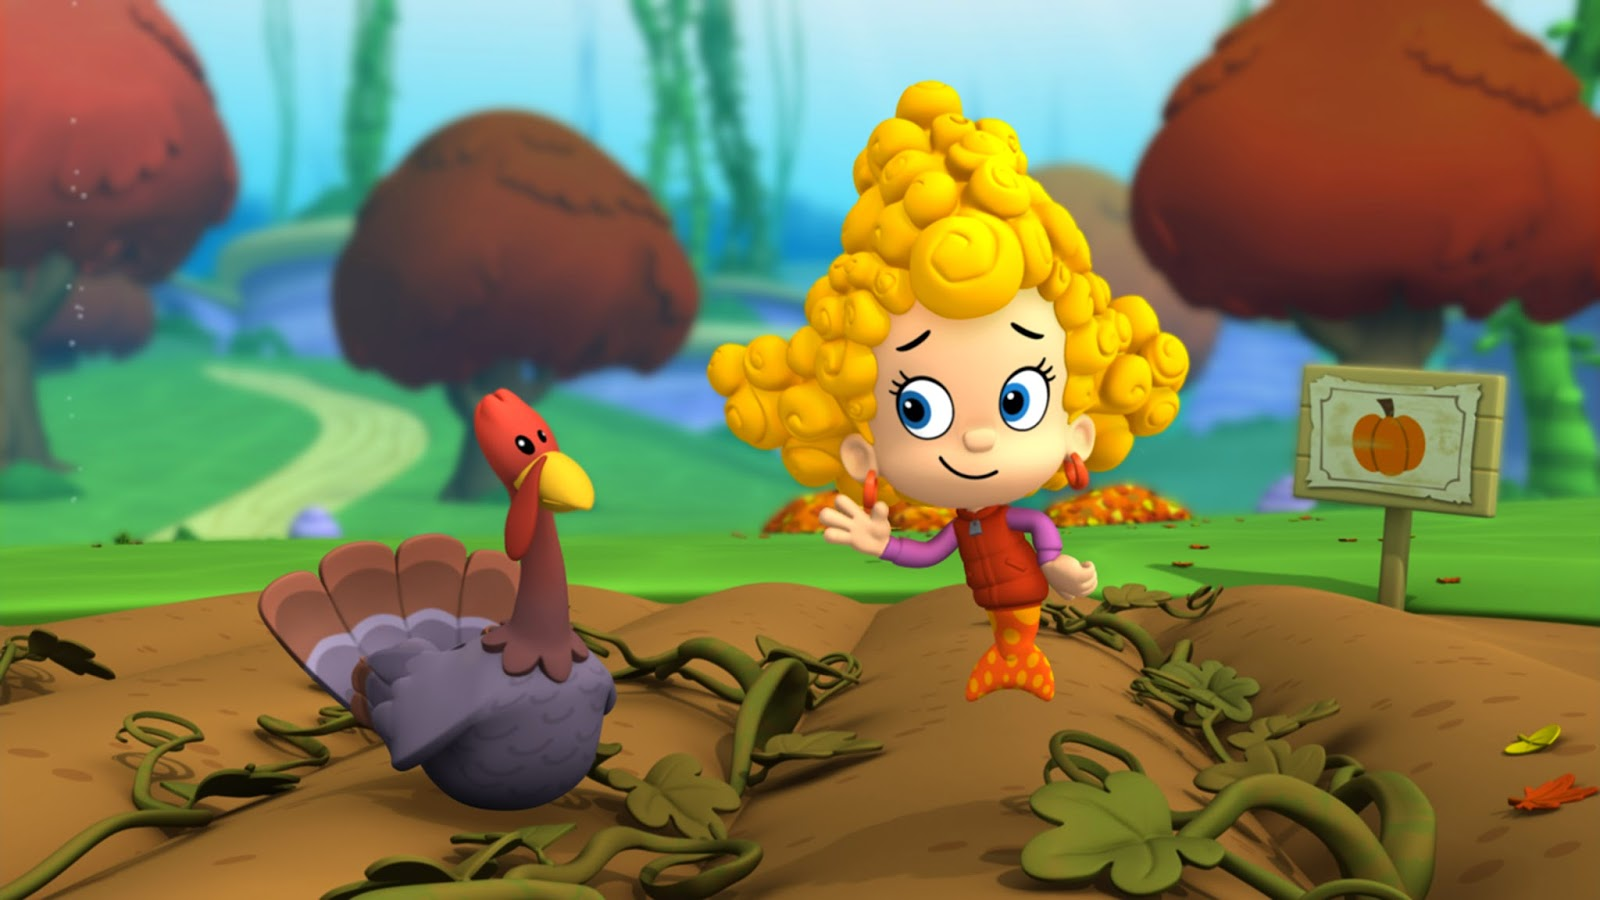 Falling Leaves Wallpaper For Iphone Bubble Guppies Wallpapers High Quality Download Free